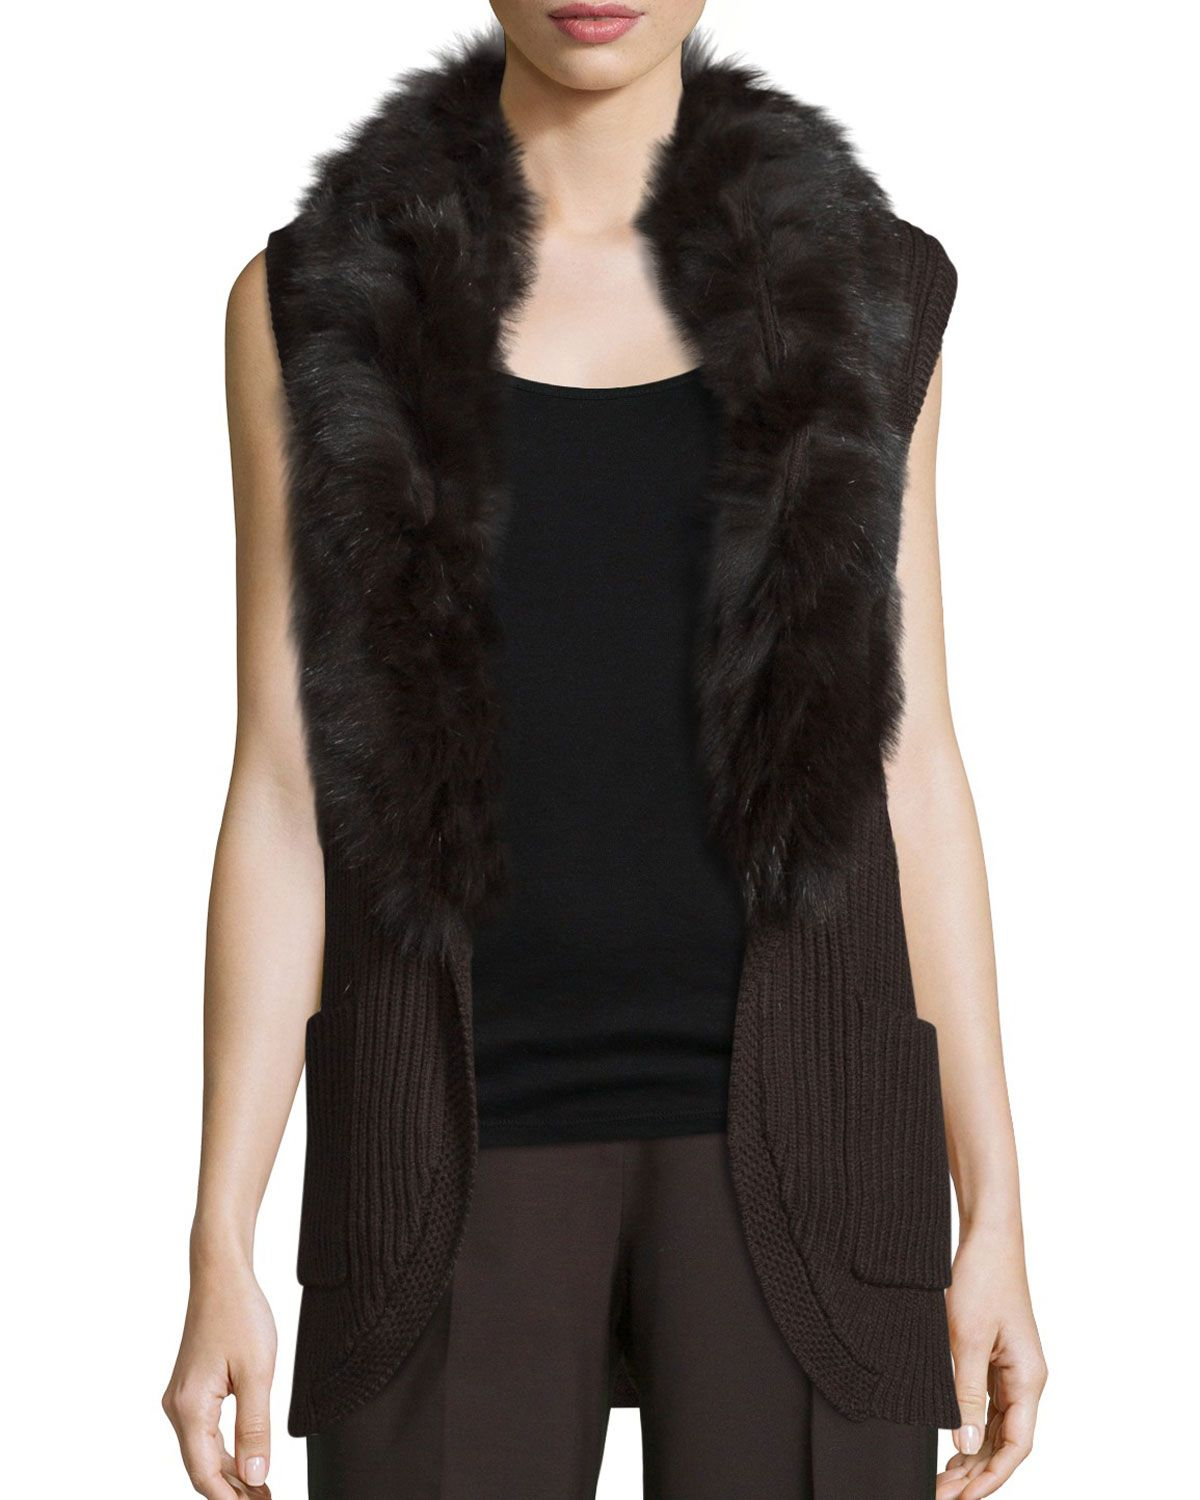 Kyla Fur-Trim Belted Sweater Vest, Chocolate (Brown) - Kobi ...